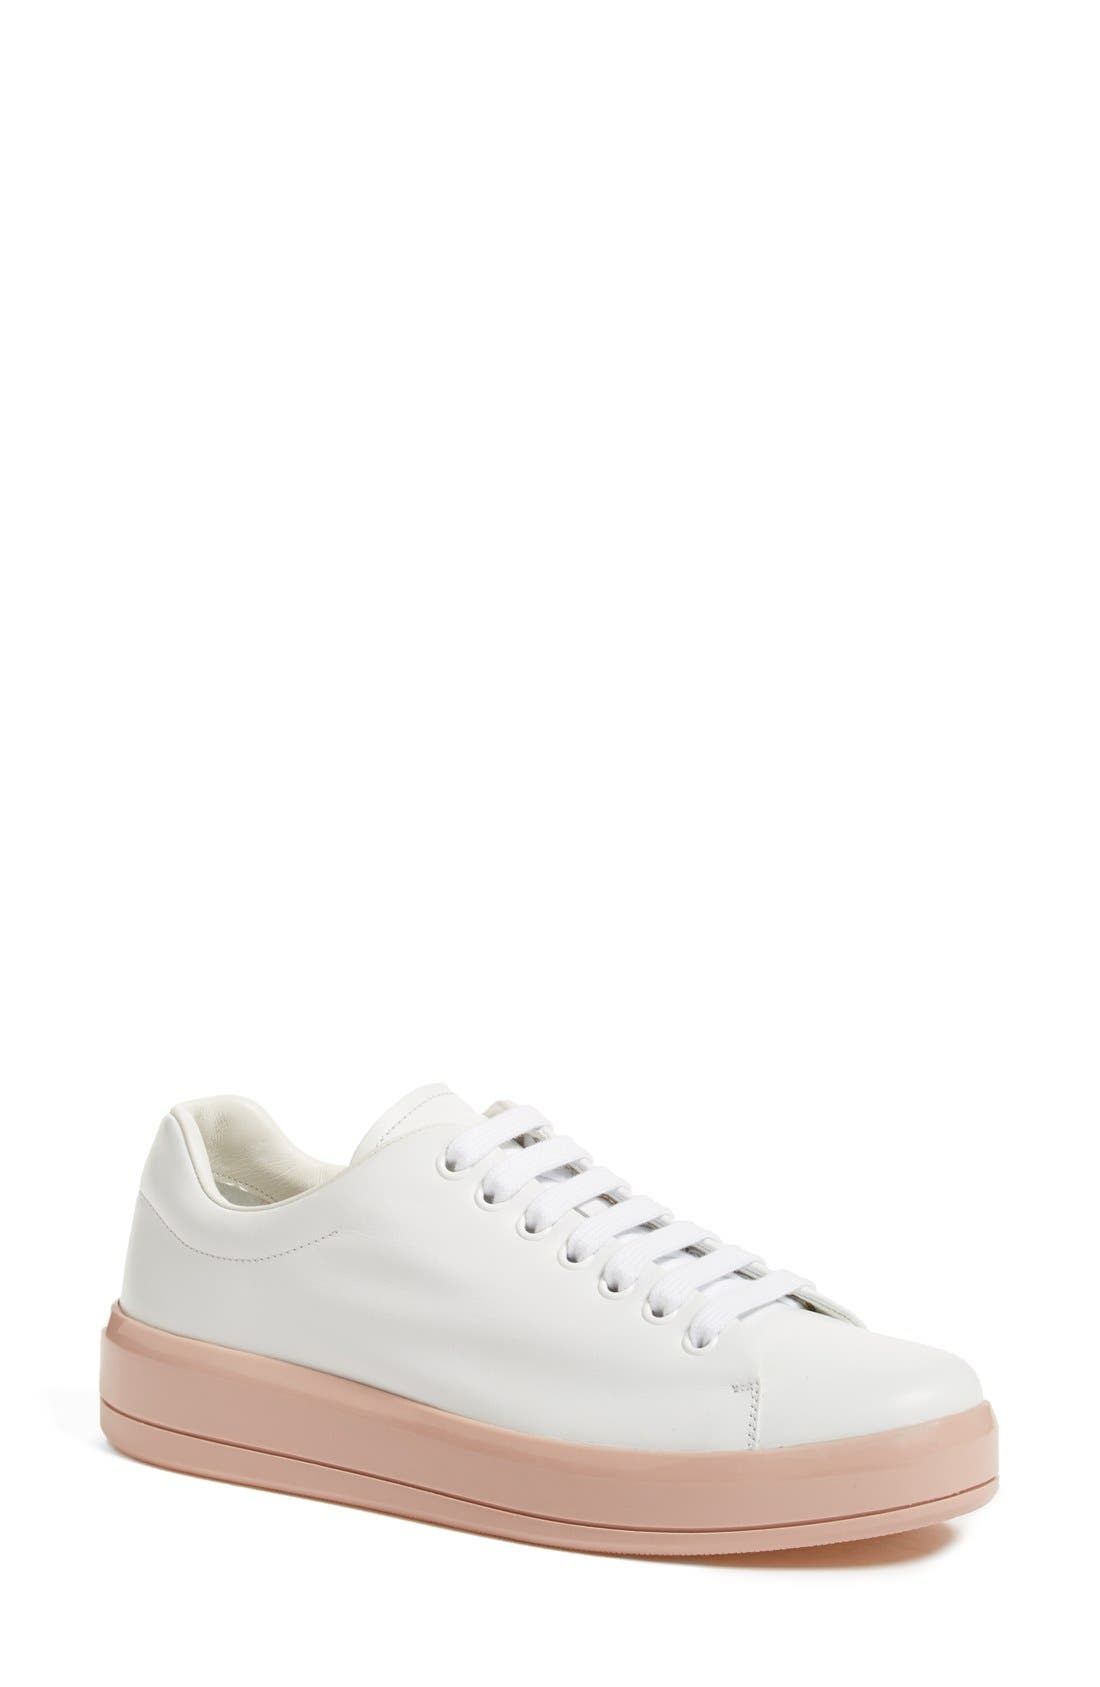 Alternate Image 1 Selected - Prada Platform Lace-Up Sneaker (Women)